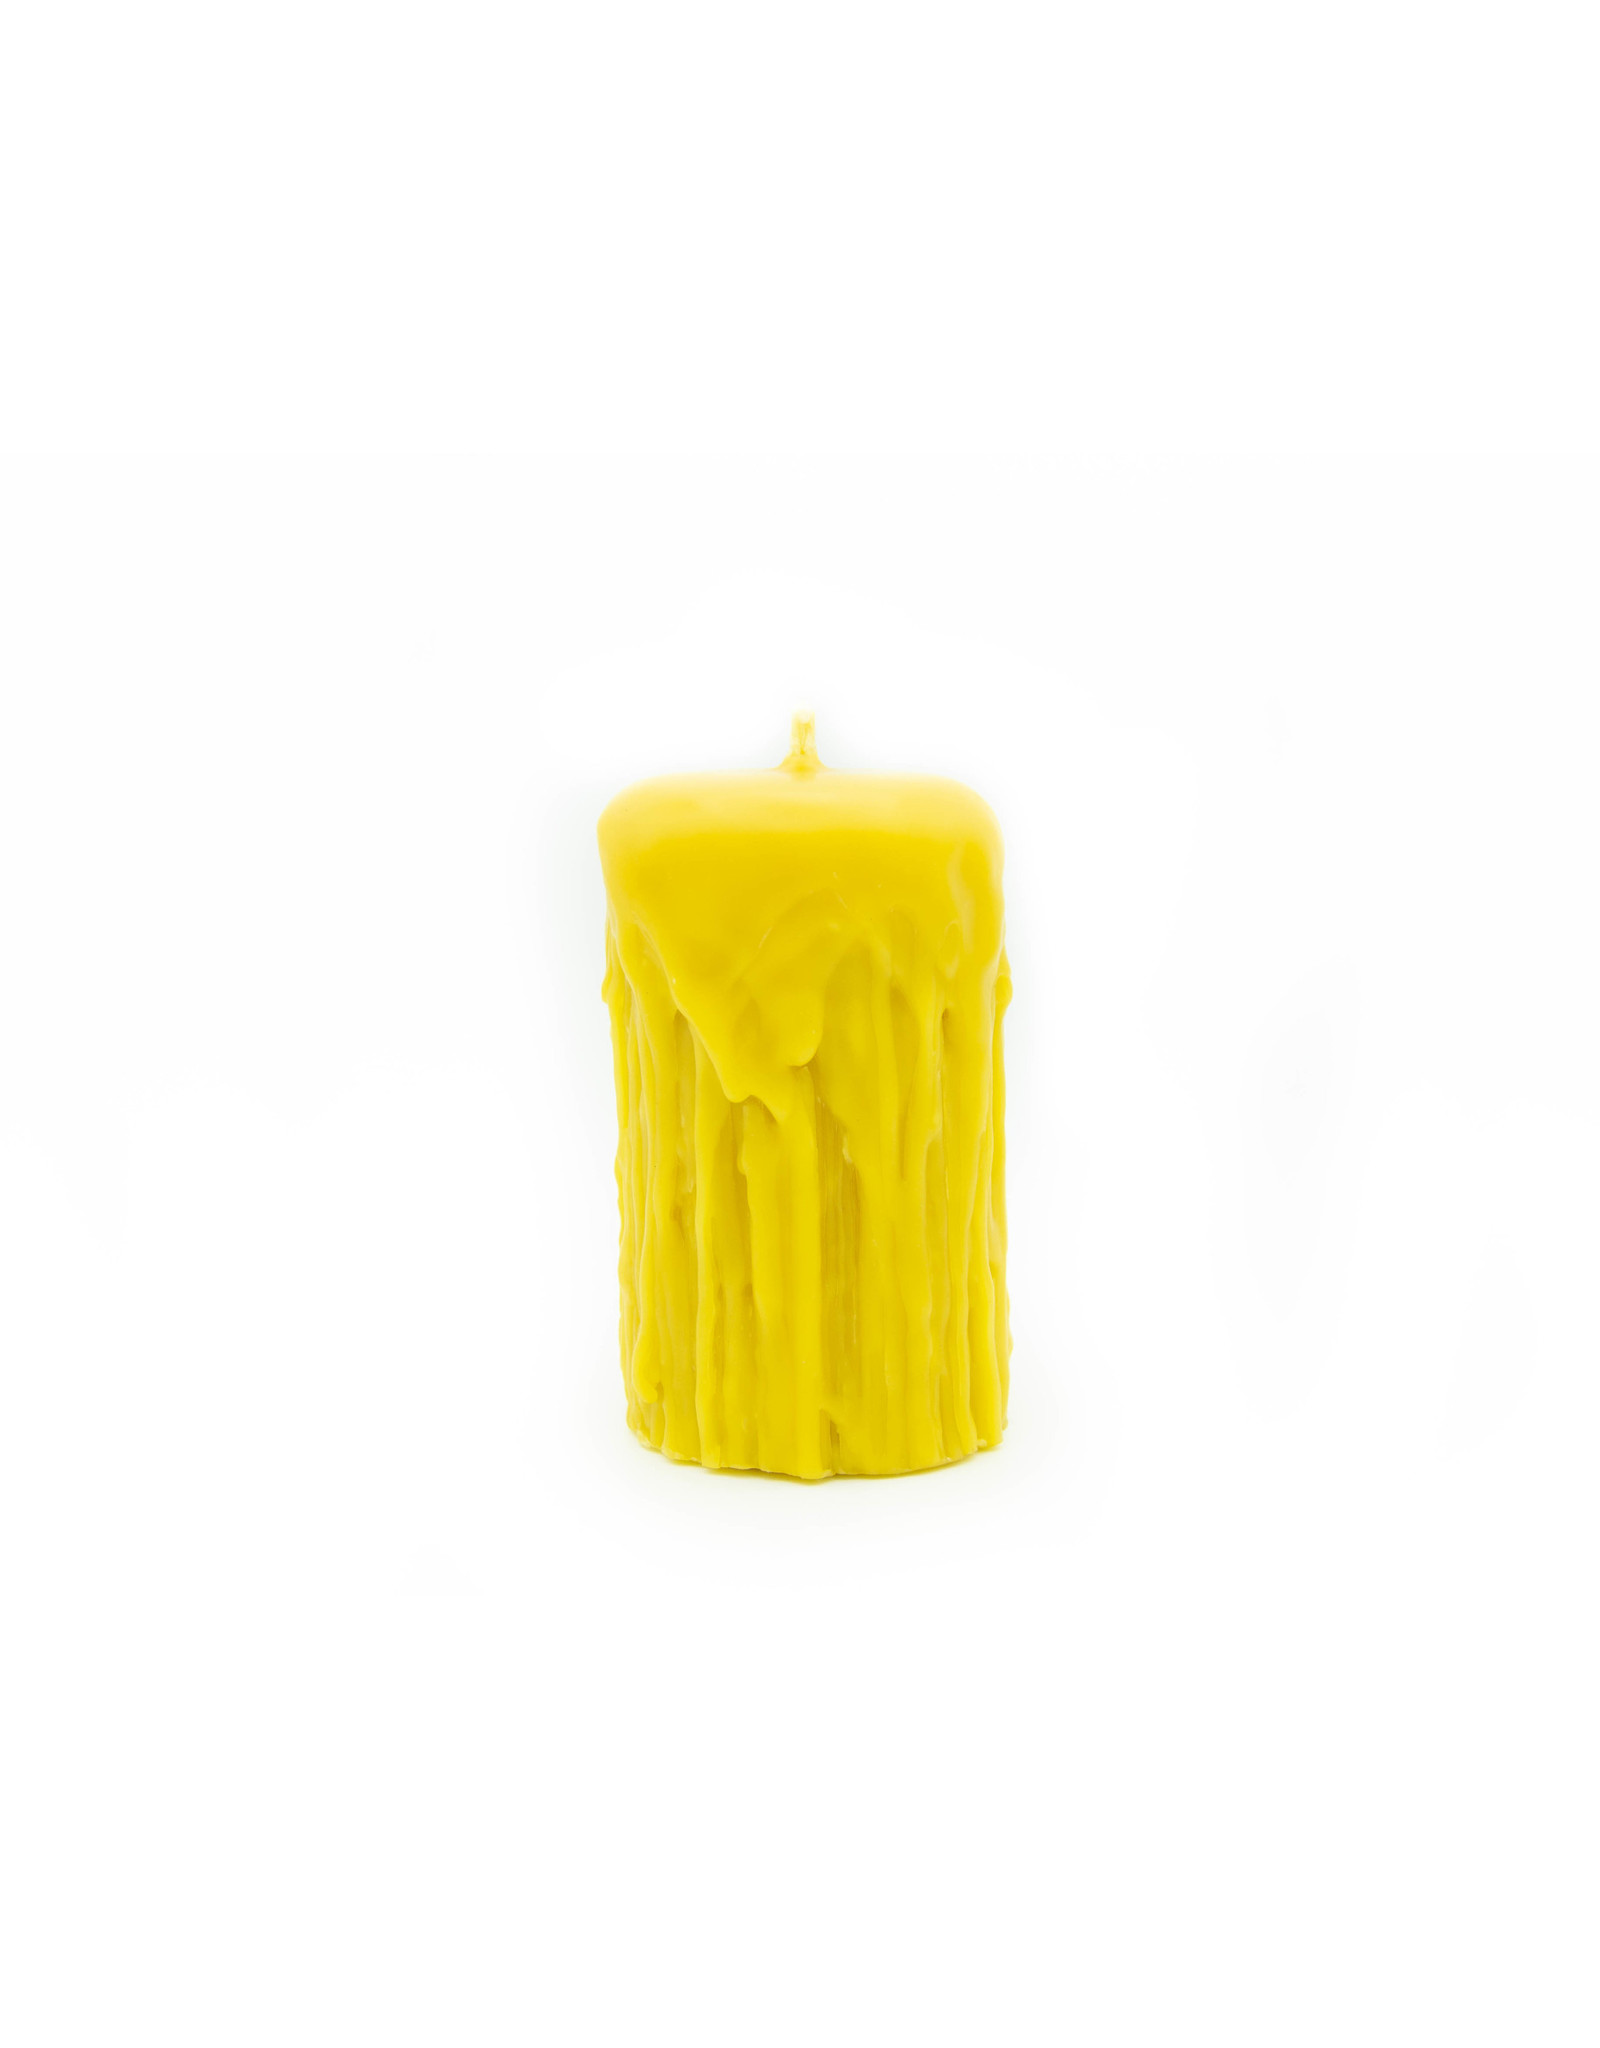 Beeswax Candle - Medieval CM6